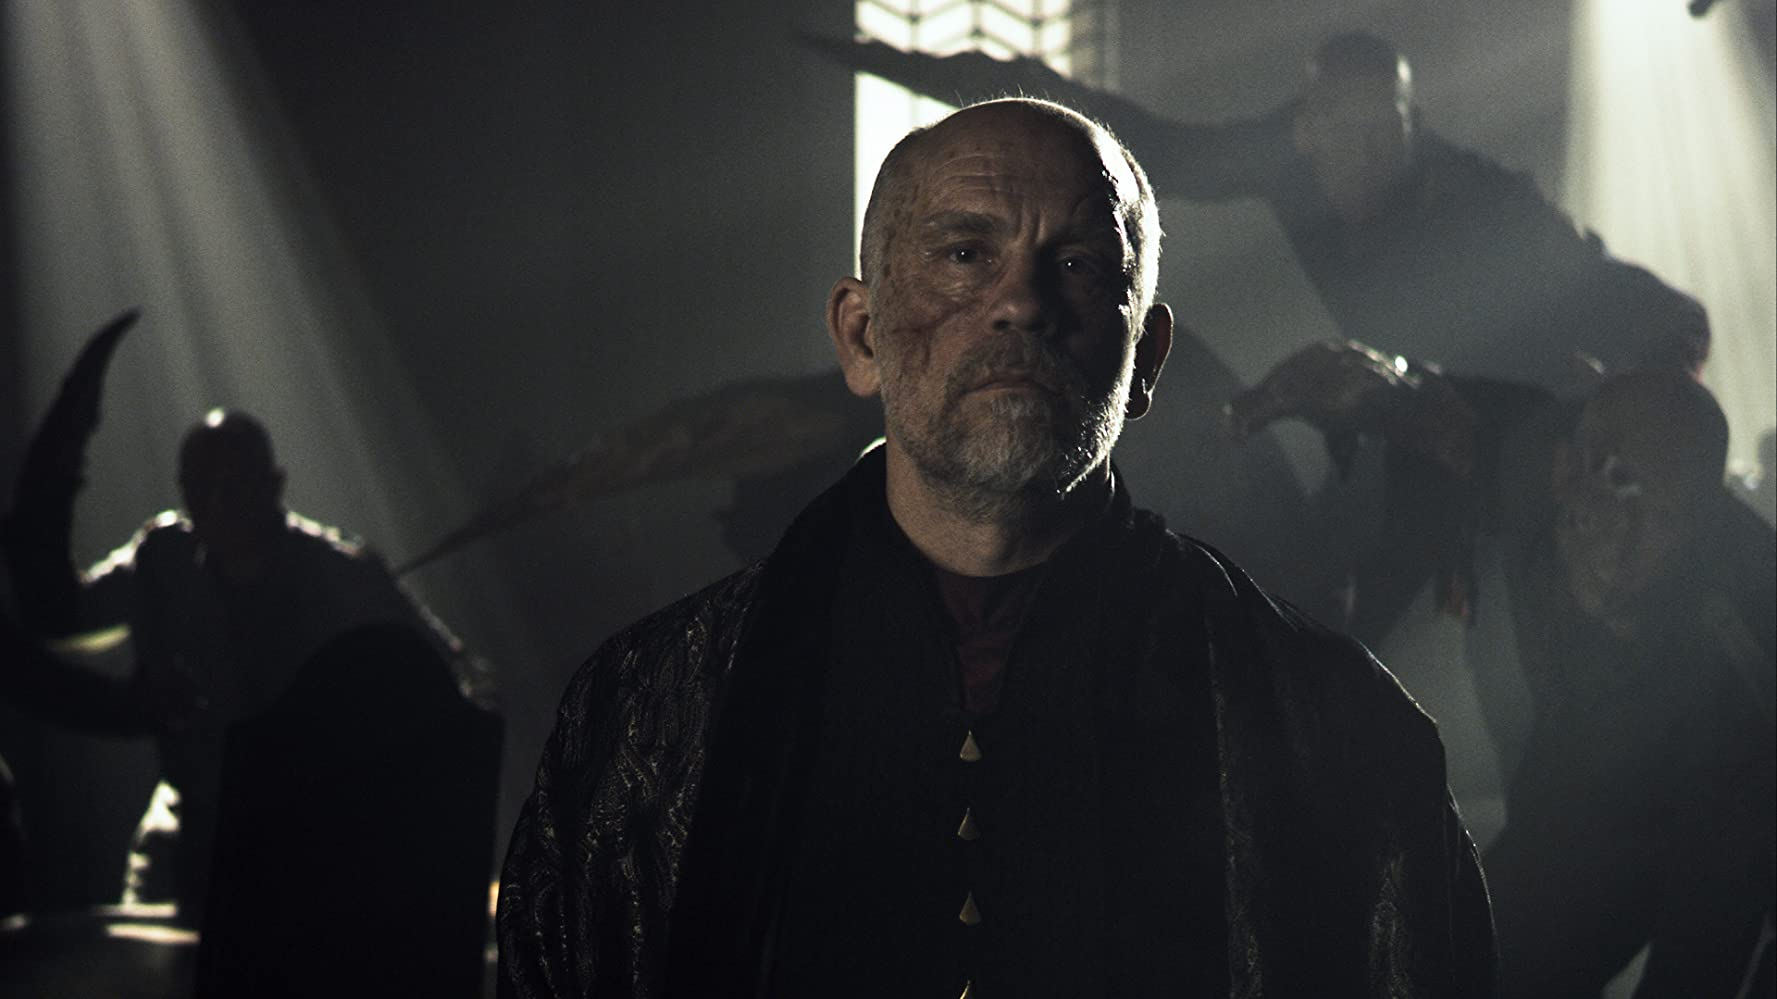 John Malkovich in Mutant Chronicles (2008)